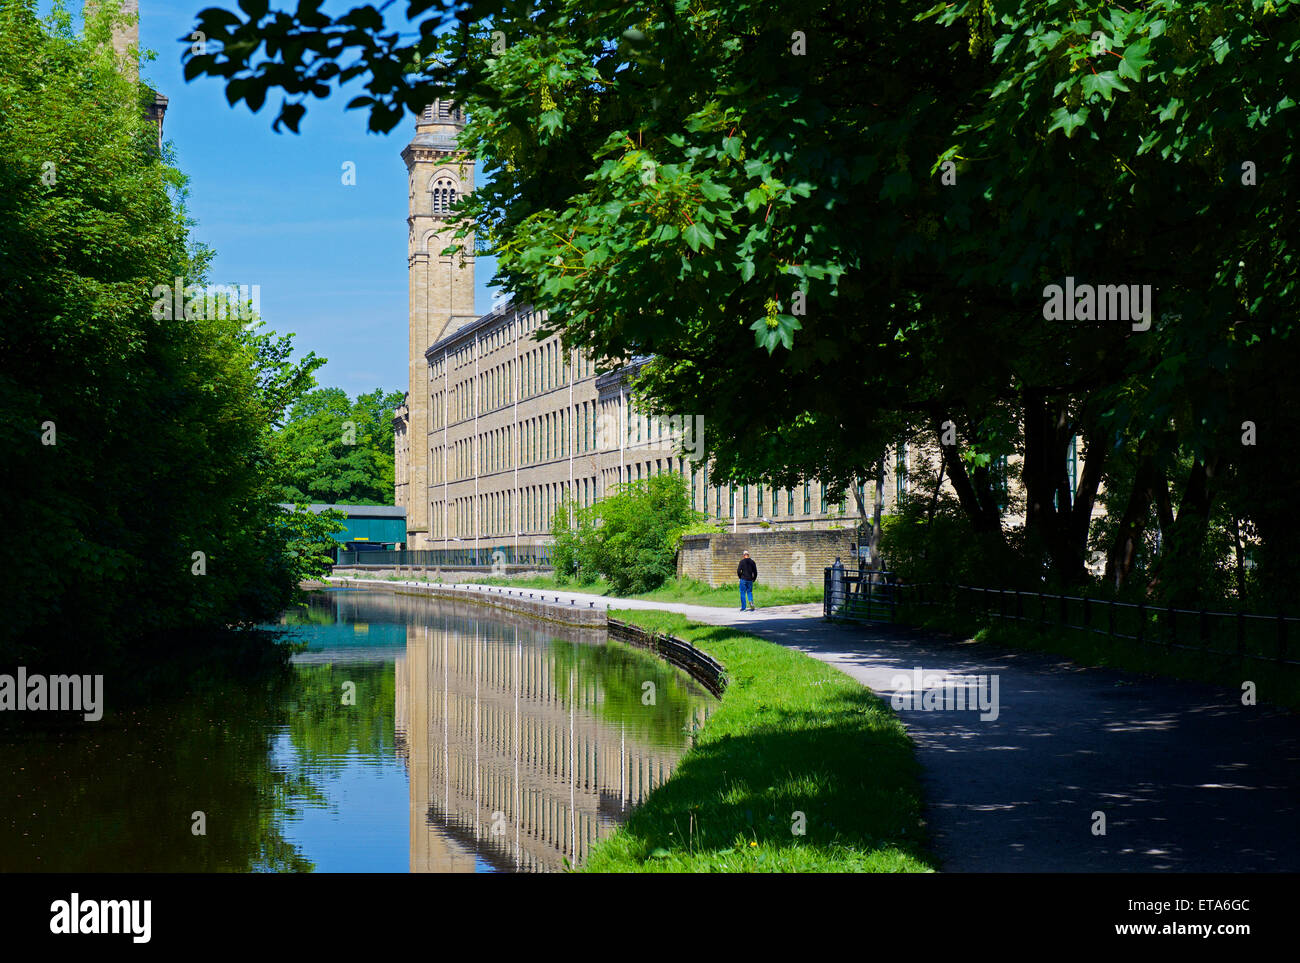 Salt's Mill and the Leeds-Liverpool Canal, Saltaire, West Yorkshire, England UK - Stock Image